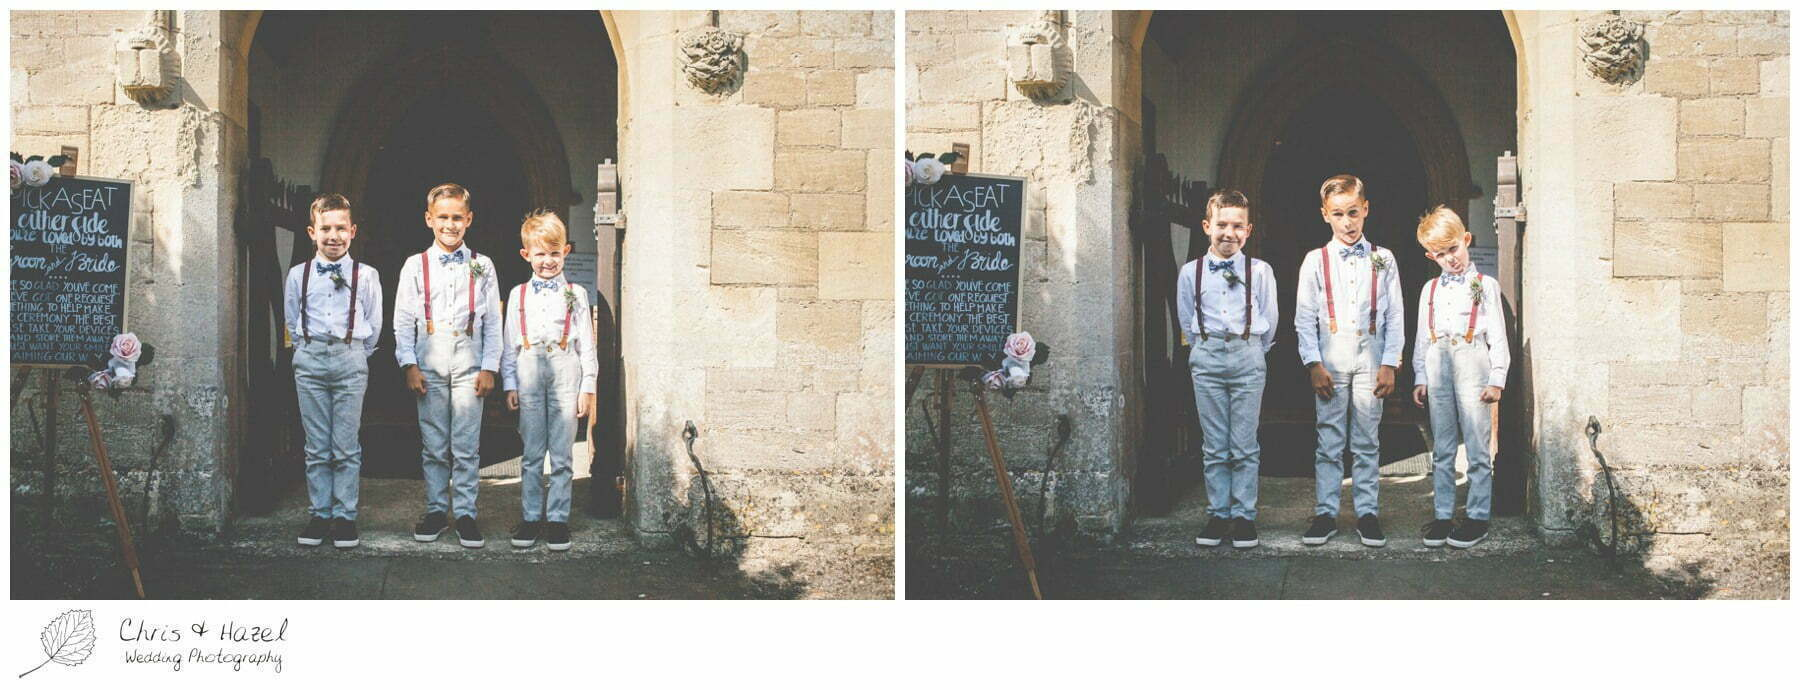 Page boys Hilperton Church, St Michael & All Angels' Church, Wedding Photography, Wiltshire Wedding Photographer Trowbridge, Chris and Hazel Wedding Photography